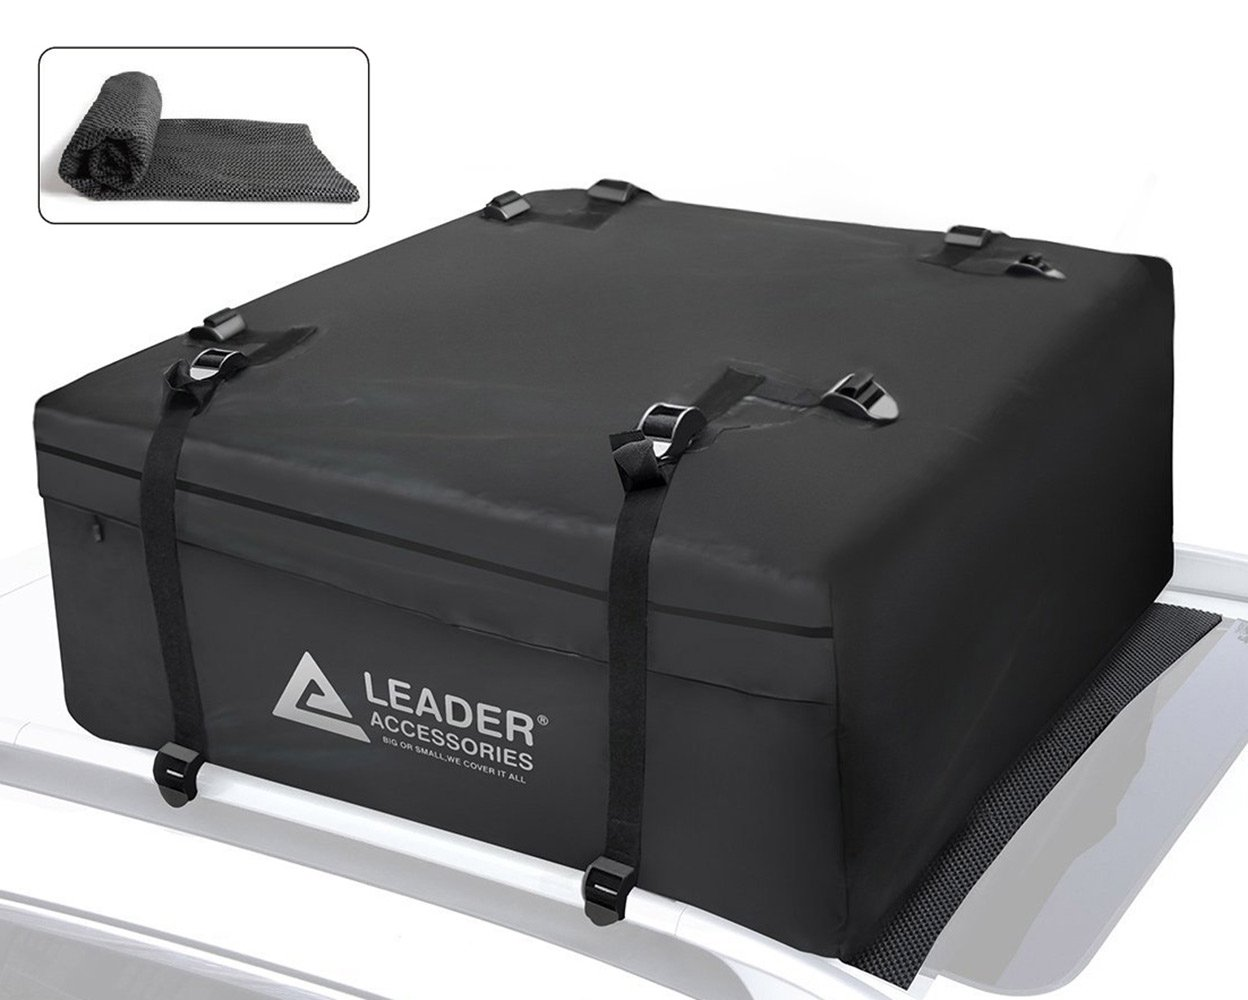 Leader Accessories 15 Cubic Feet Rooftop Cargo Bag Waterproof Cargo Carrier With Racks Heavy Duty Top Storage With Anti-slip Mat by Leader Accessories